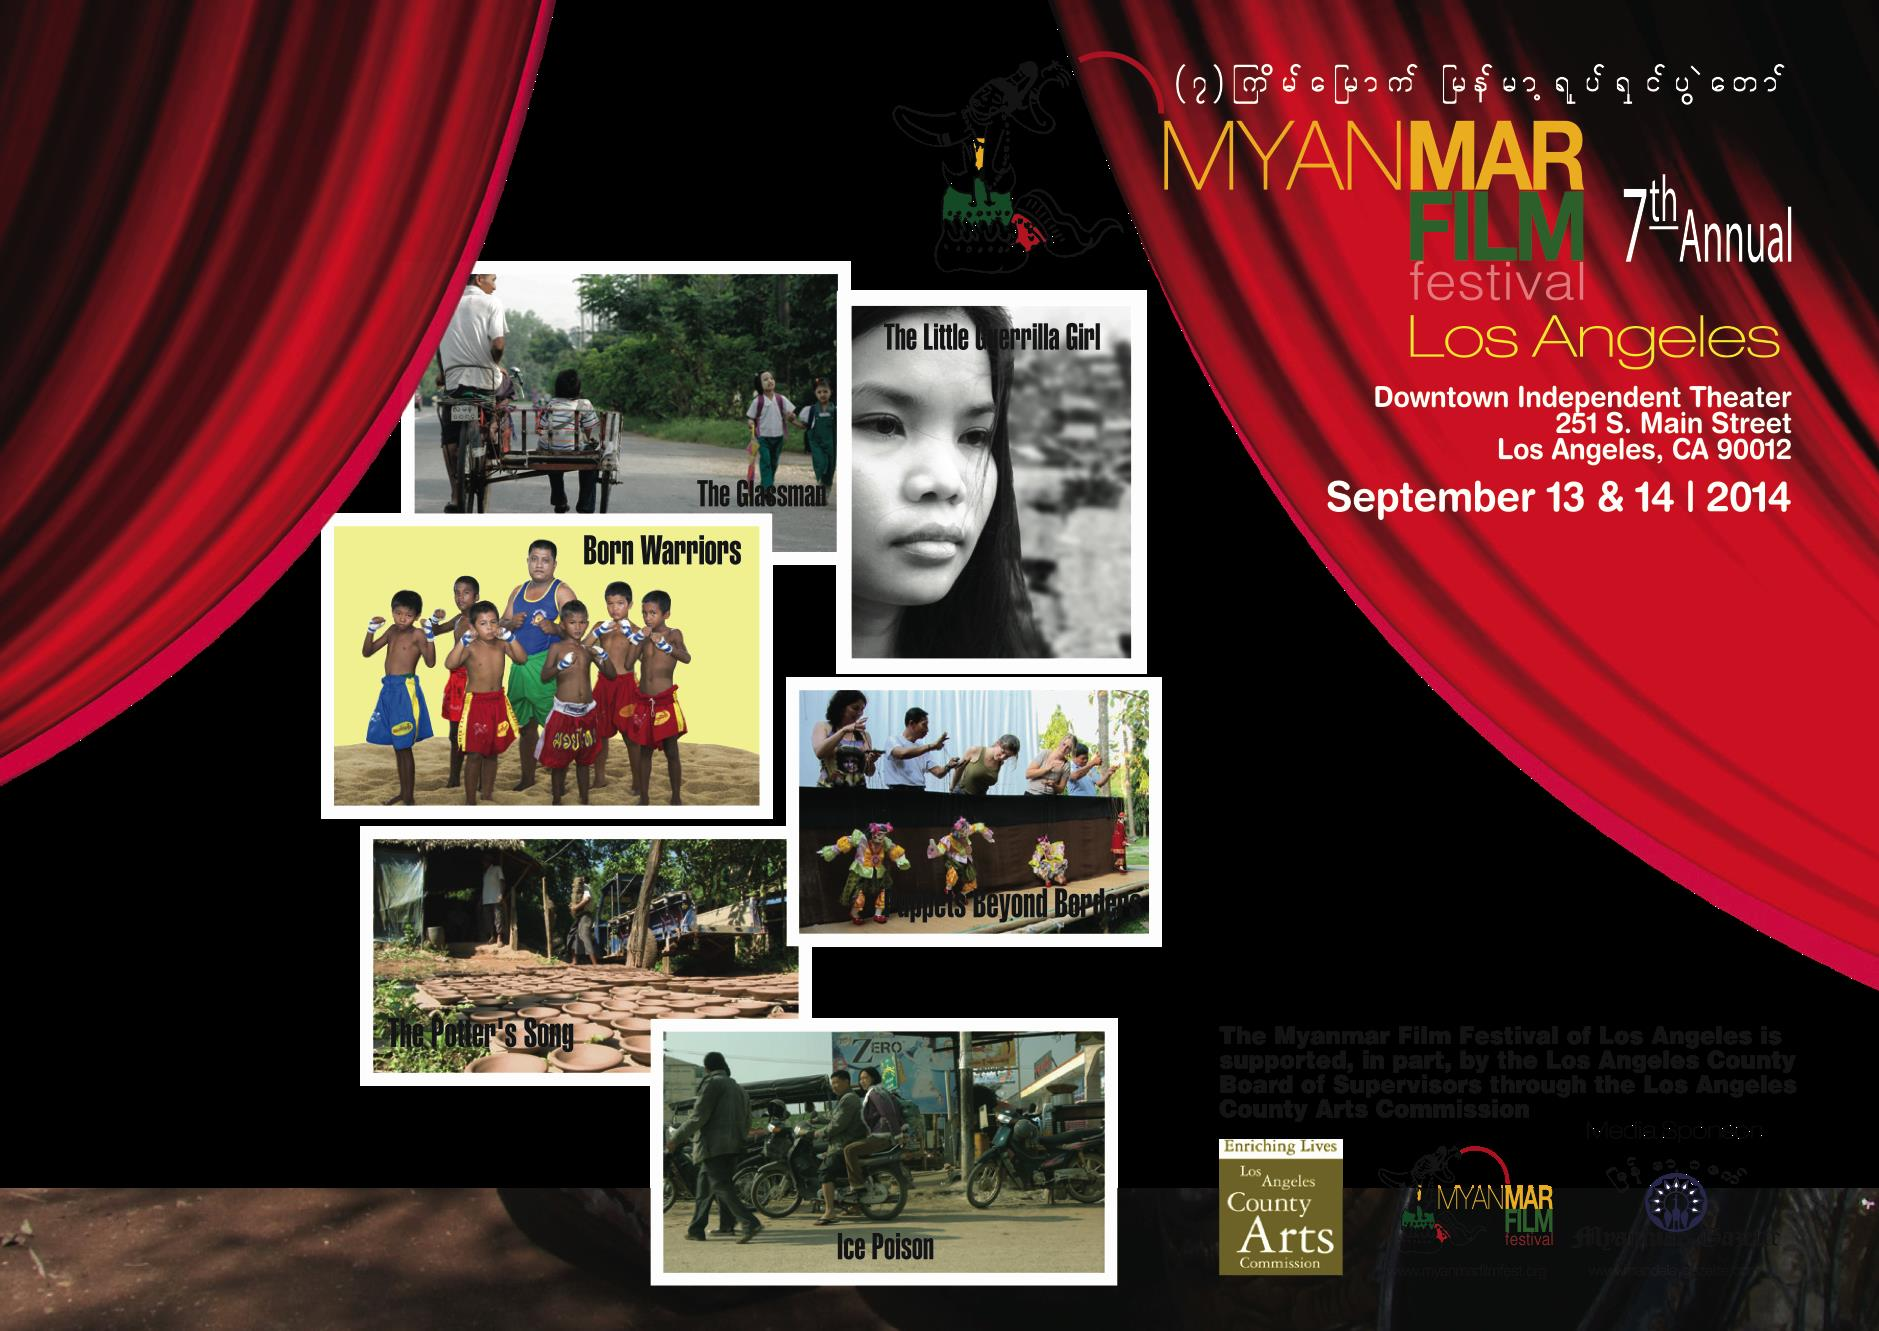 Myanmar Film Festival - 1 of 3